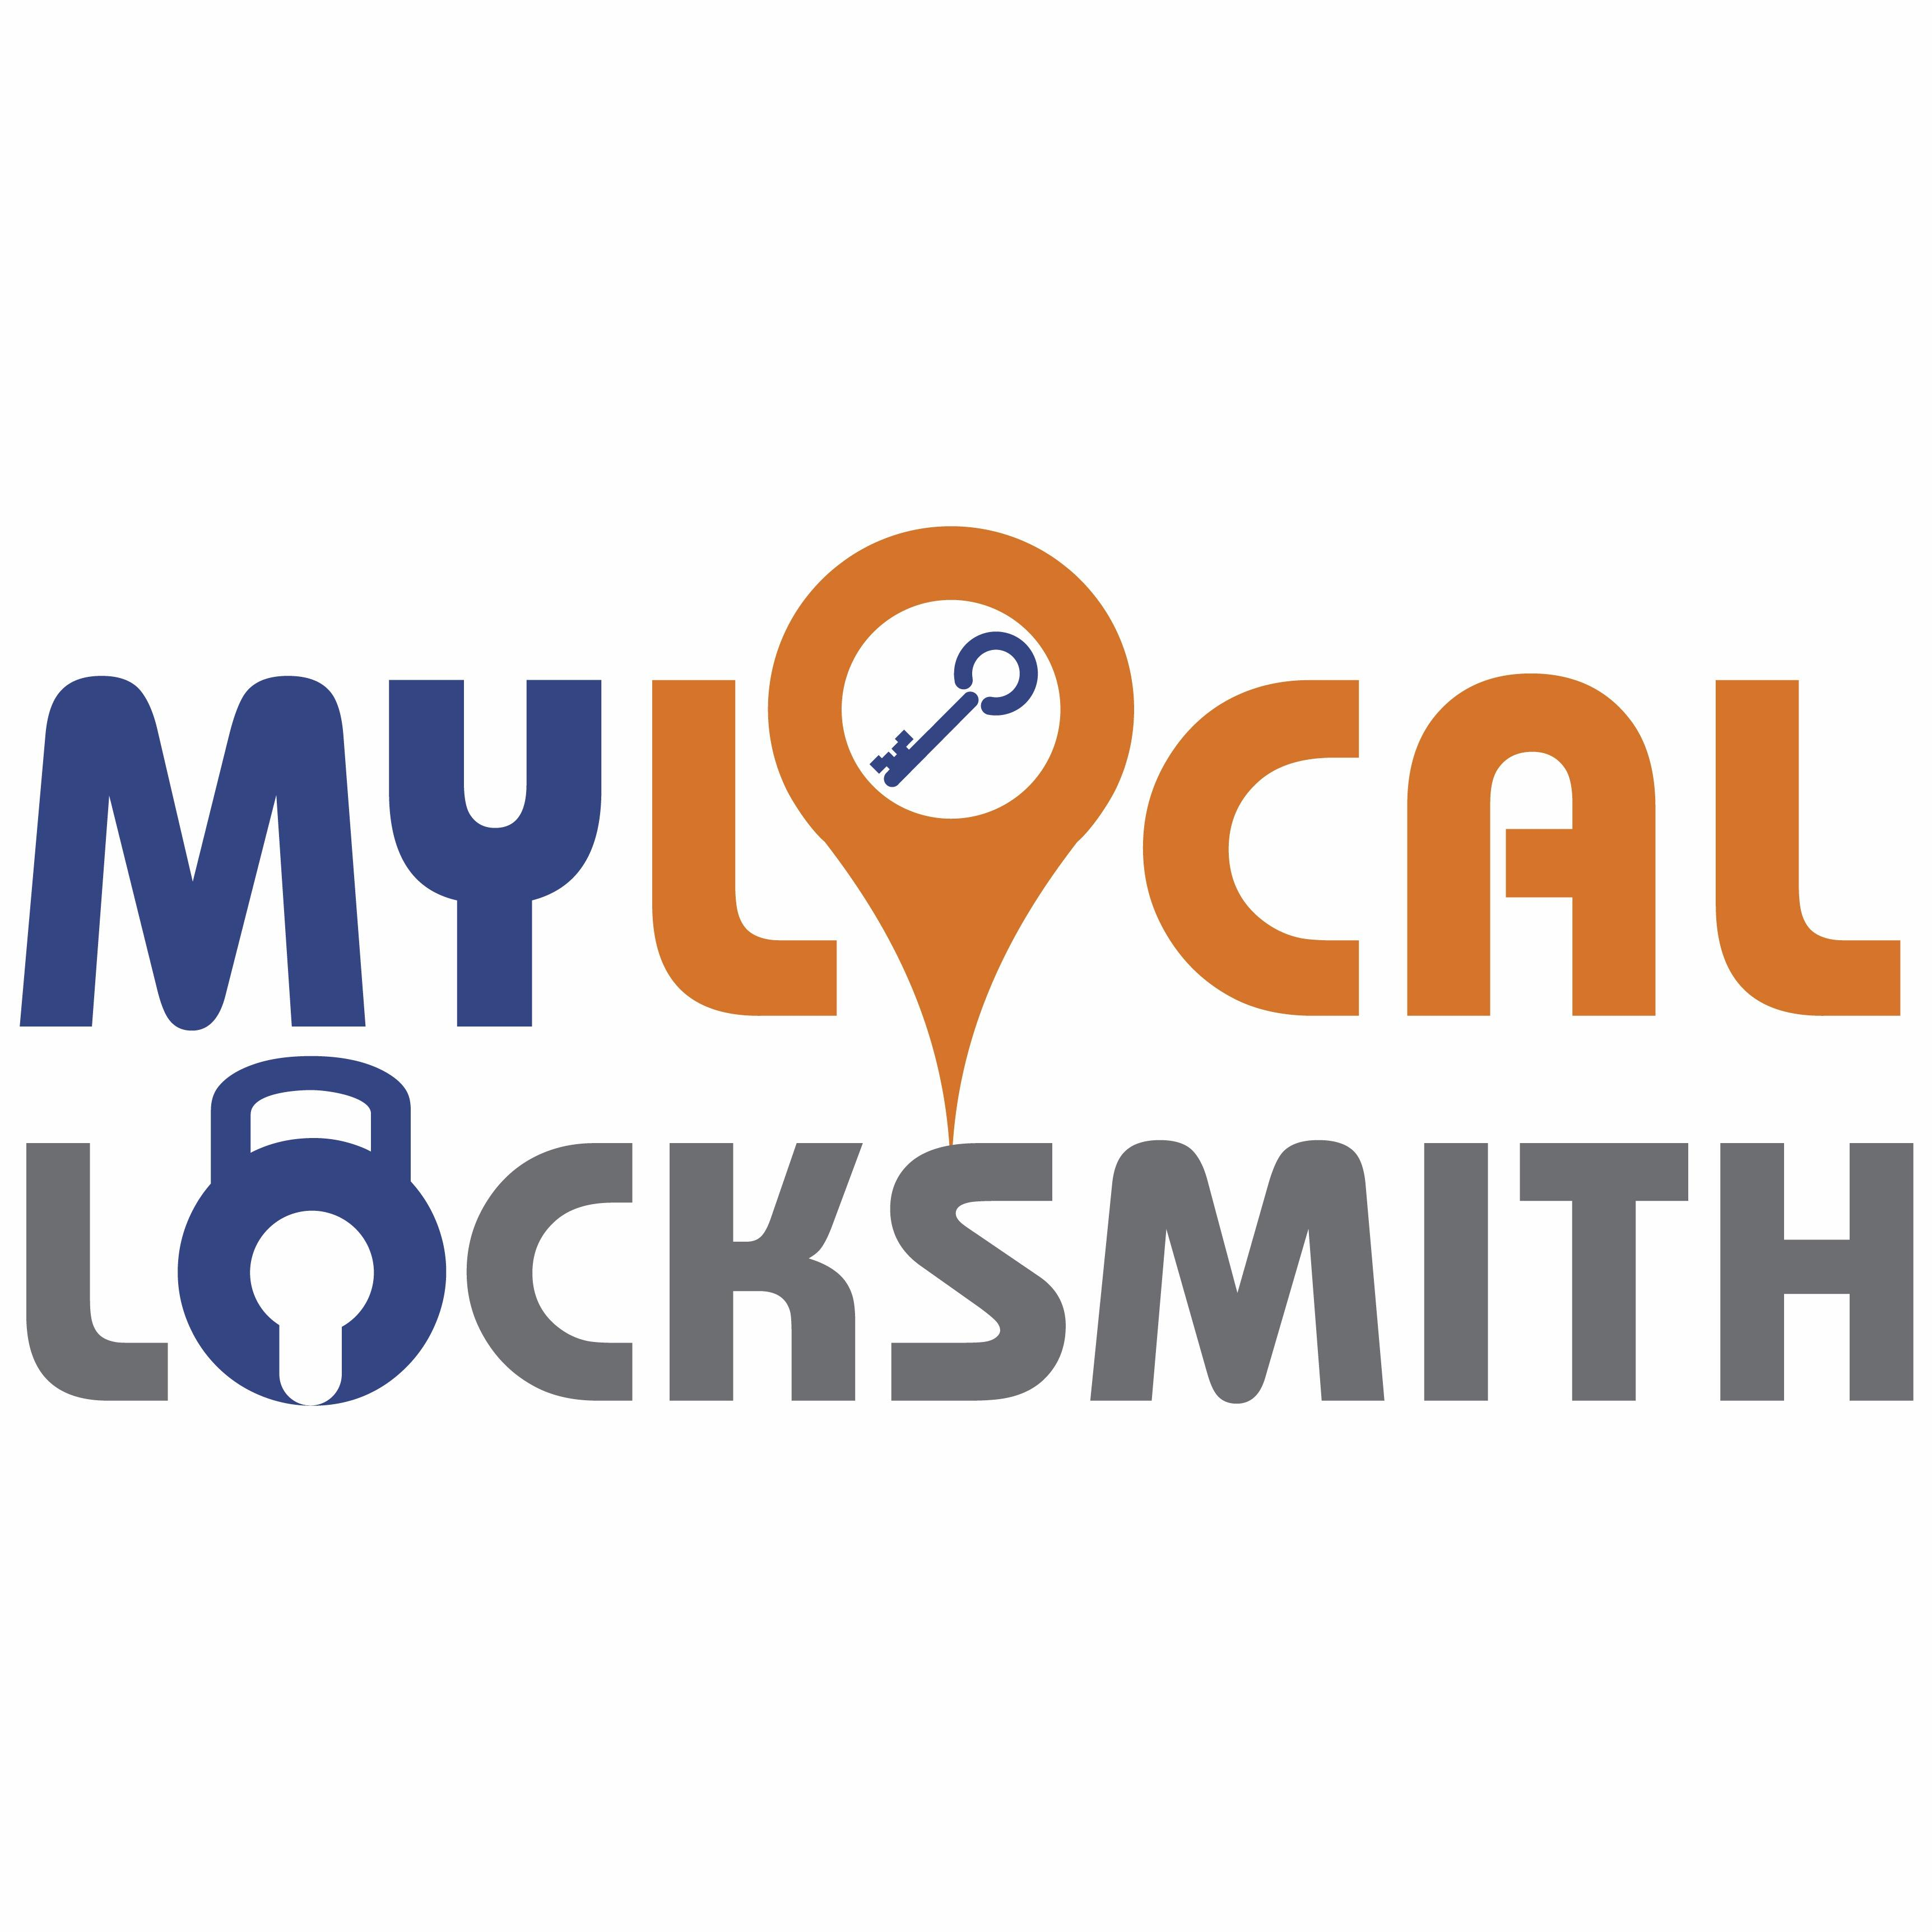 My Local Locksmith